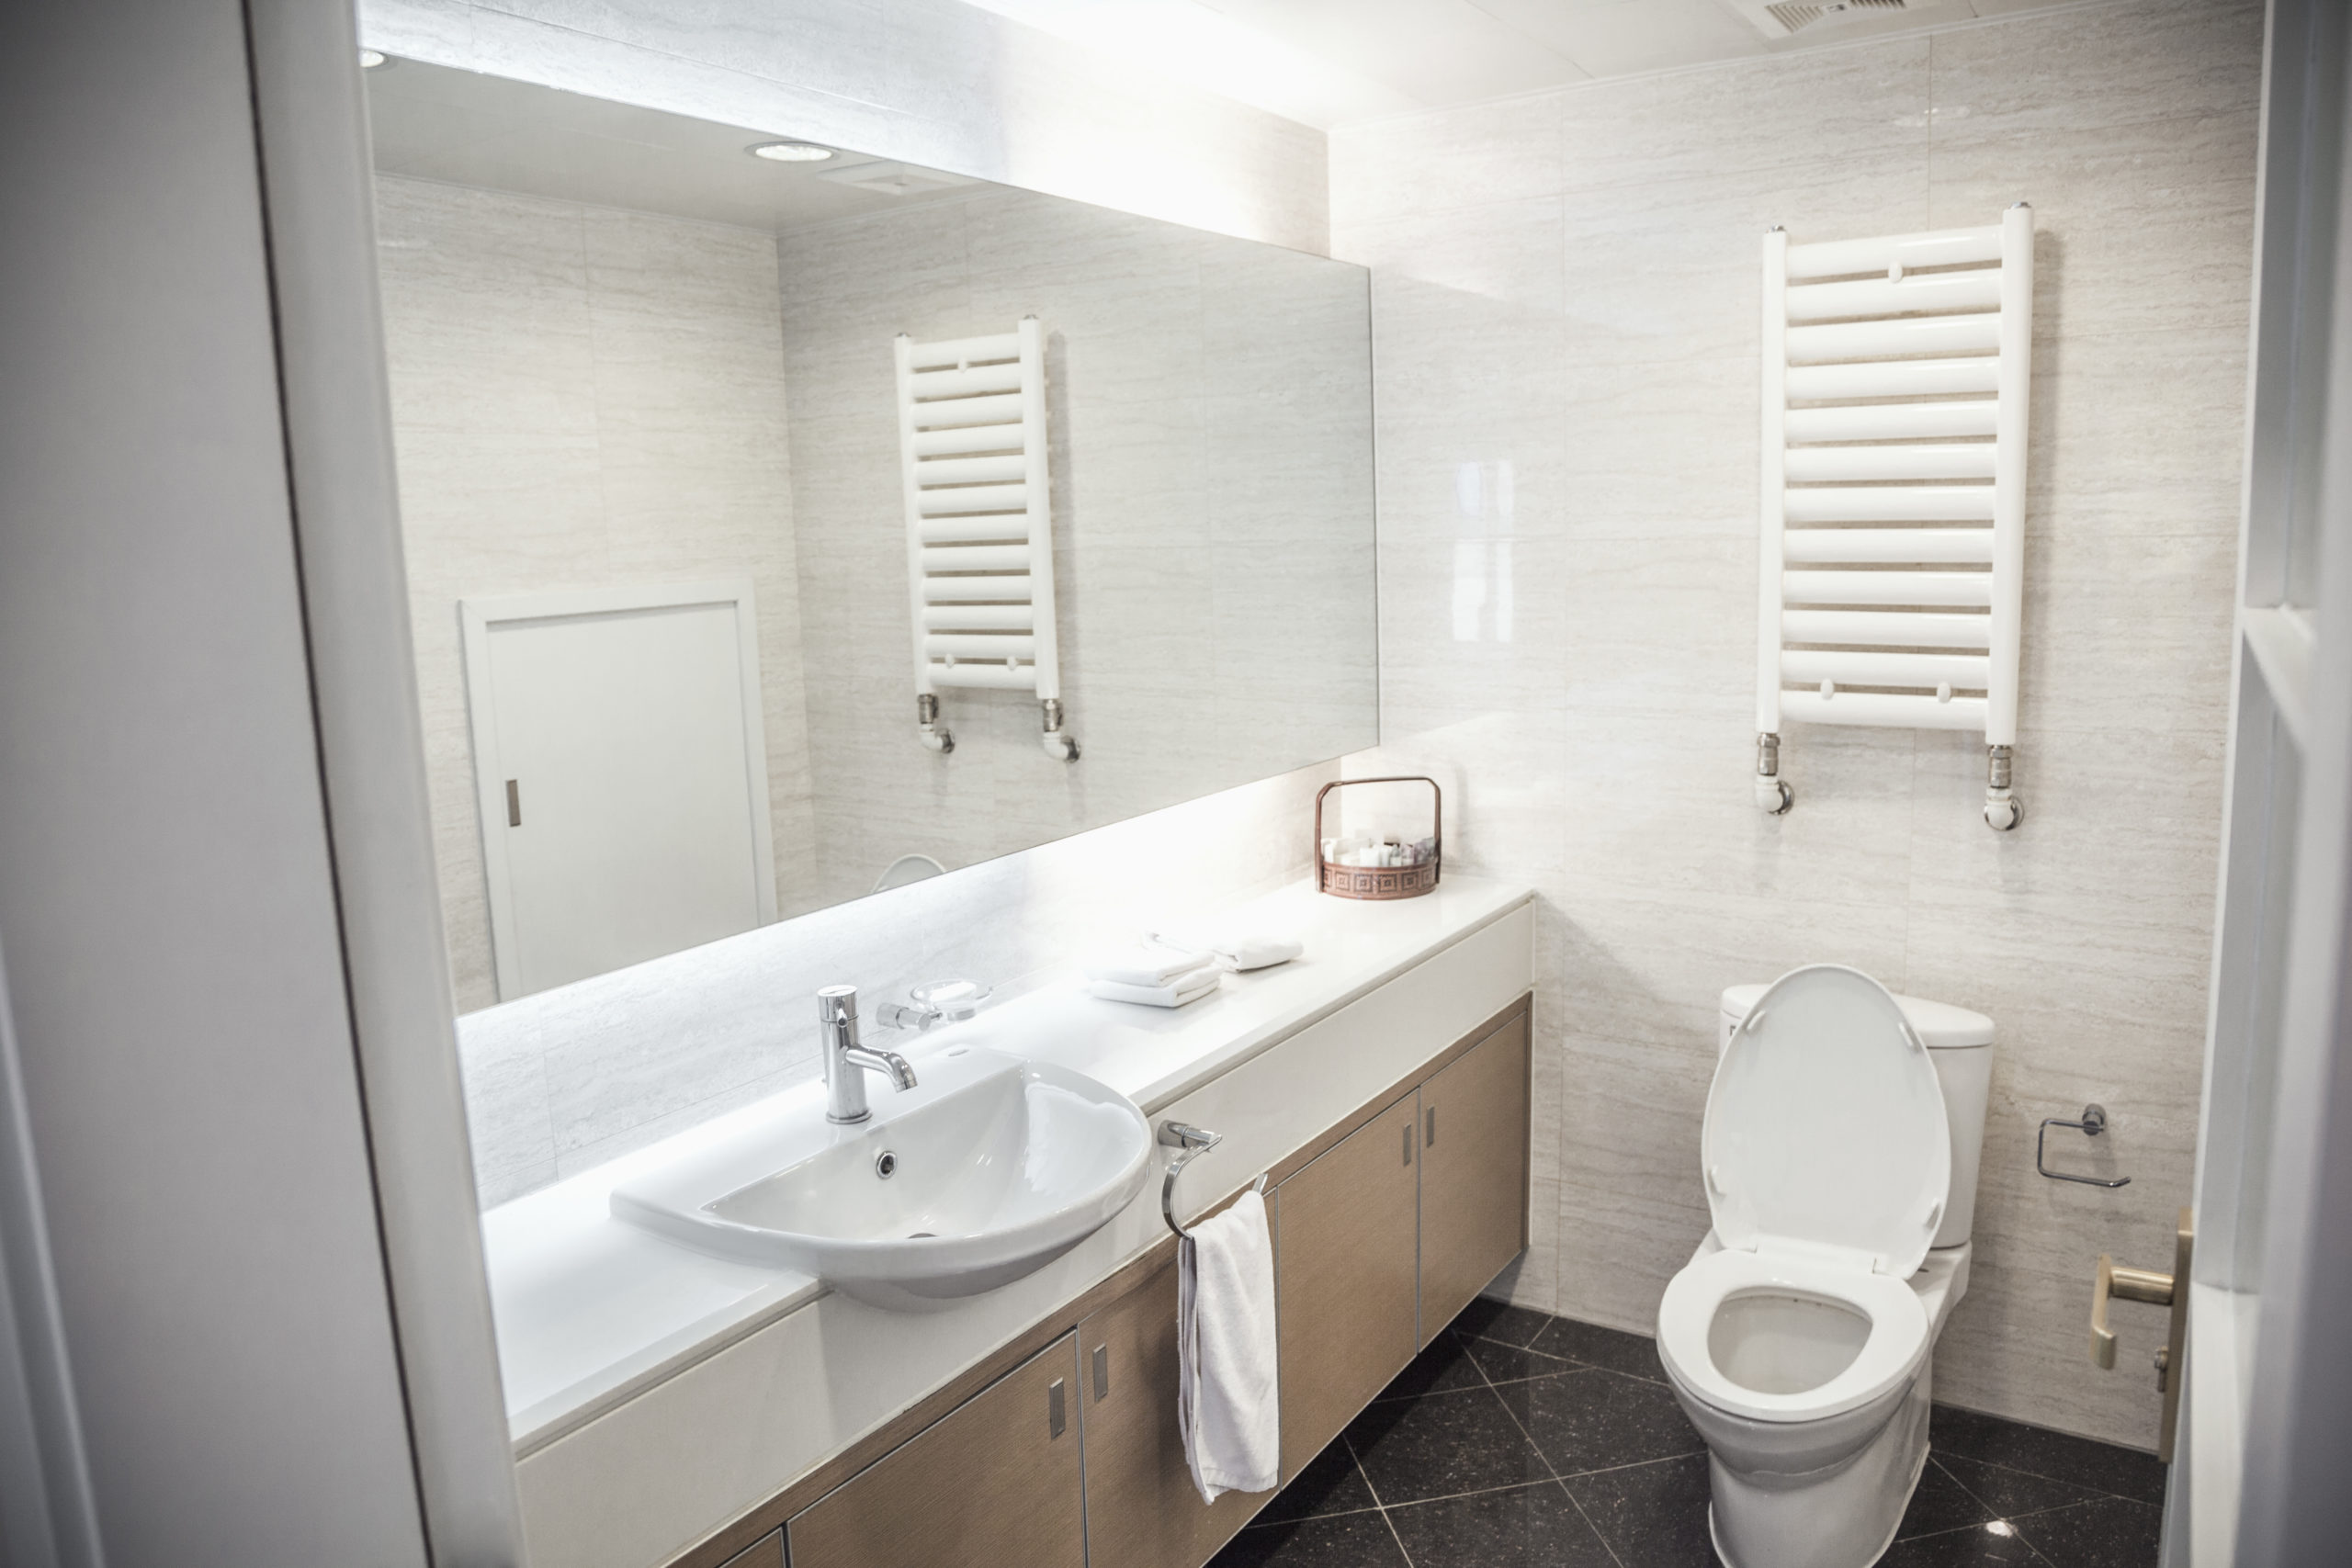 Modern, clean, bathroom with toilet and sink.